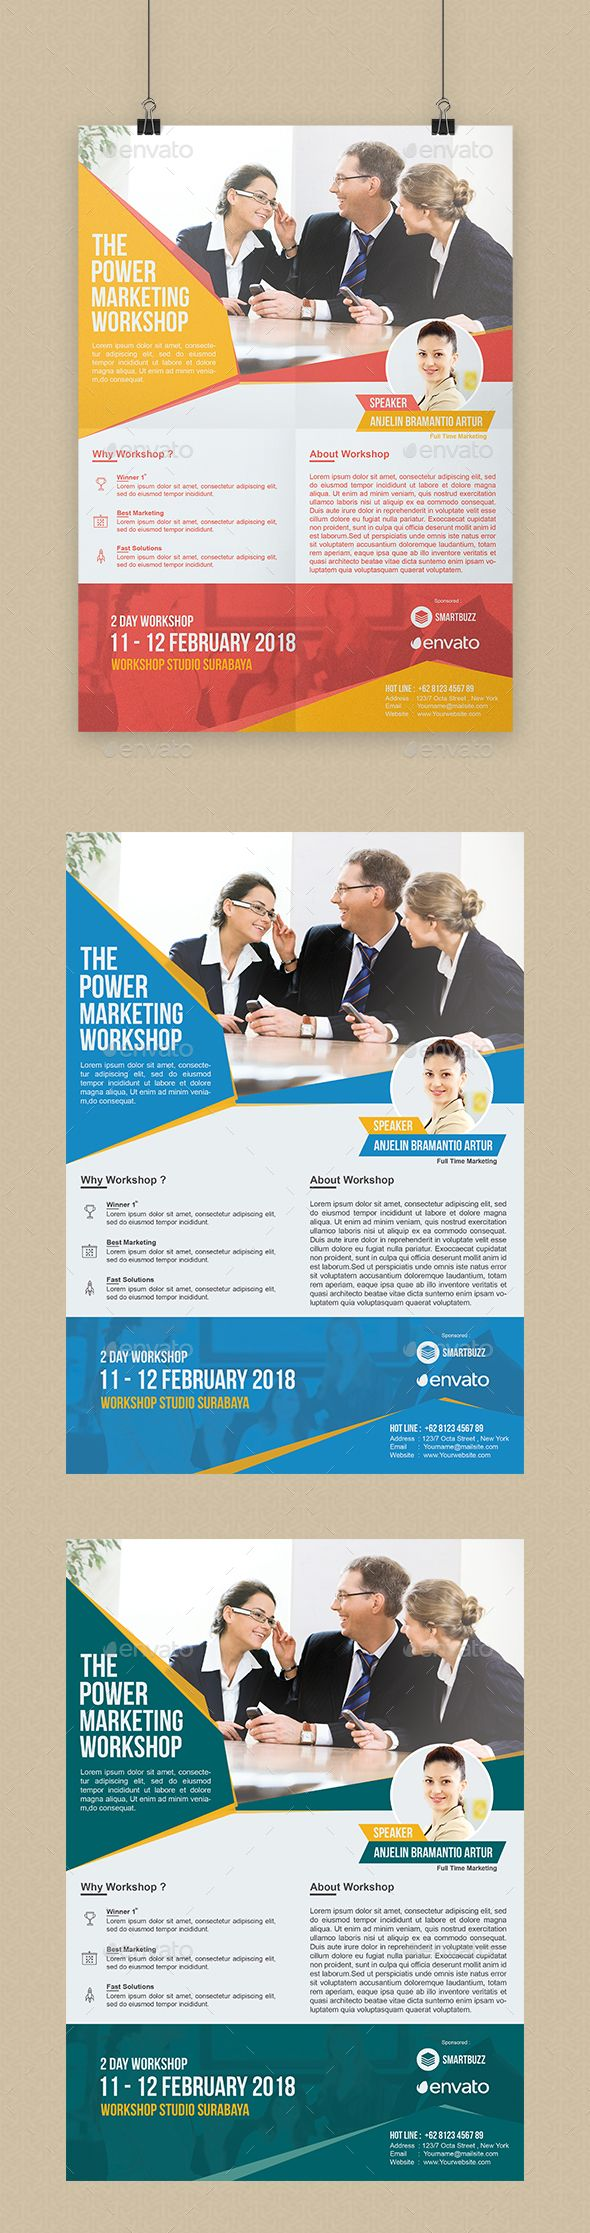 Marketing Workshop Flyer by Zeinoel SpesifikasiPSDA4 Format (21×29 ...